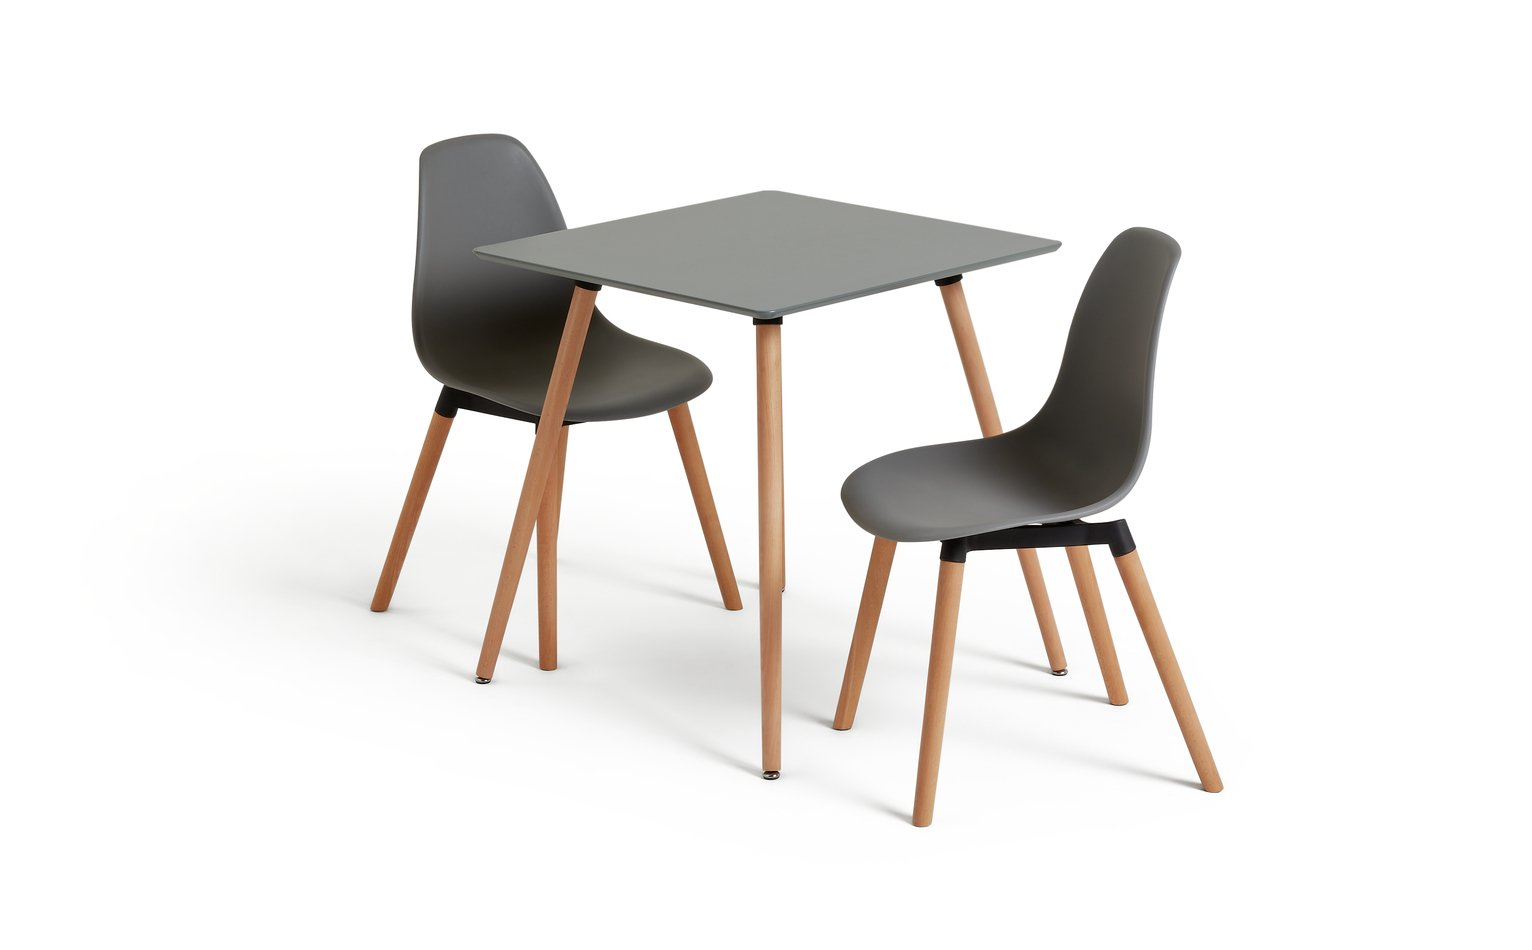 Argos Home Berlin Square Dining Table and 2 Chairs - Grey  sc 1 st  Argos & Buy Argos Home Berlin Square Dining Table and 2 Chairs - Grey ...